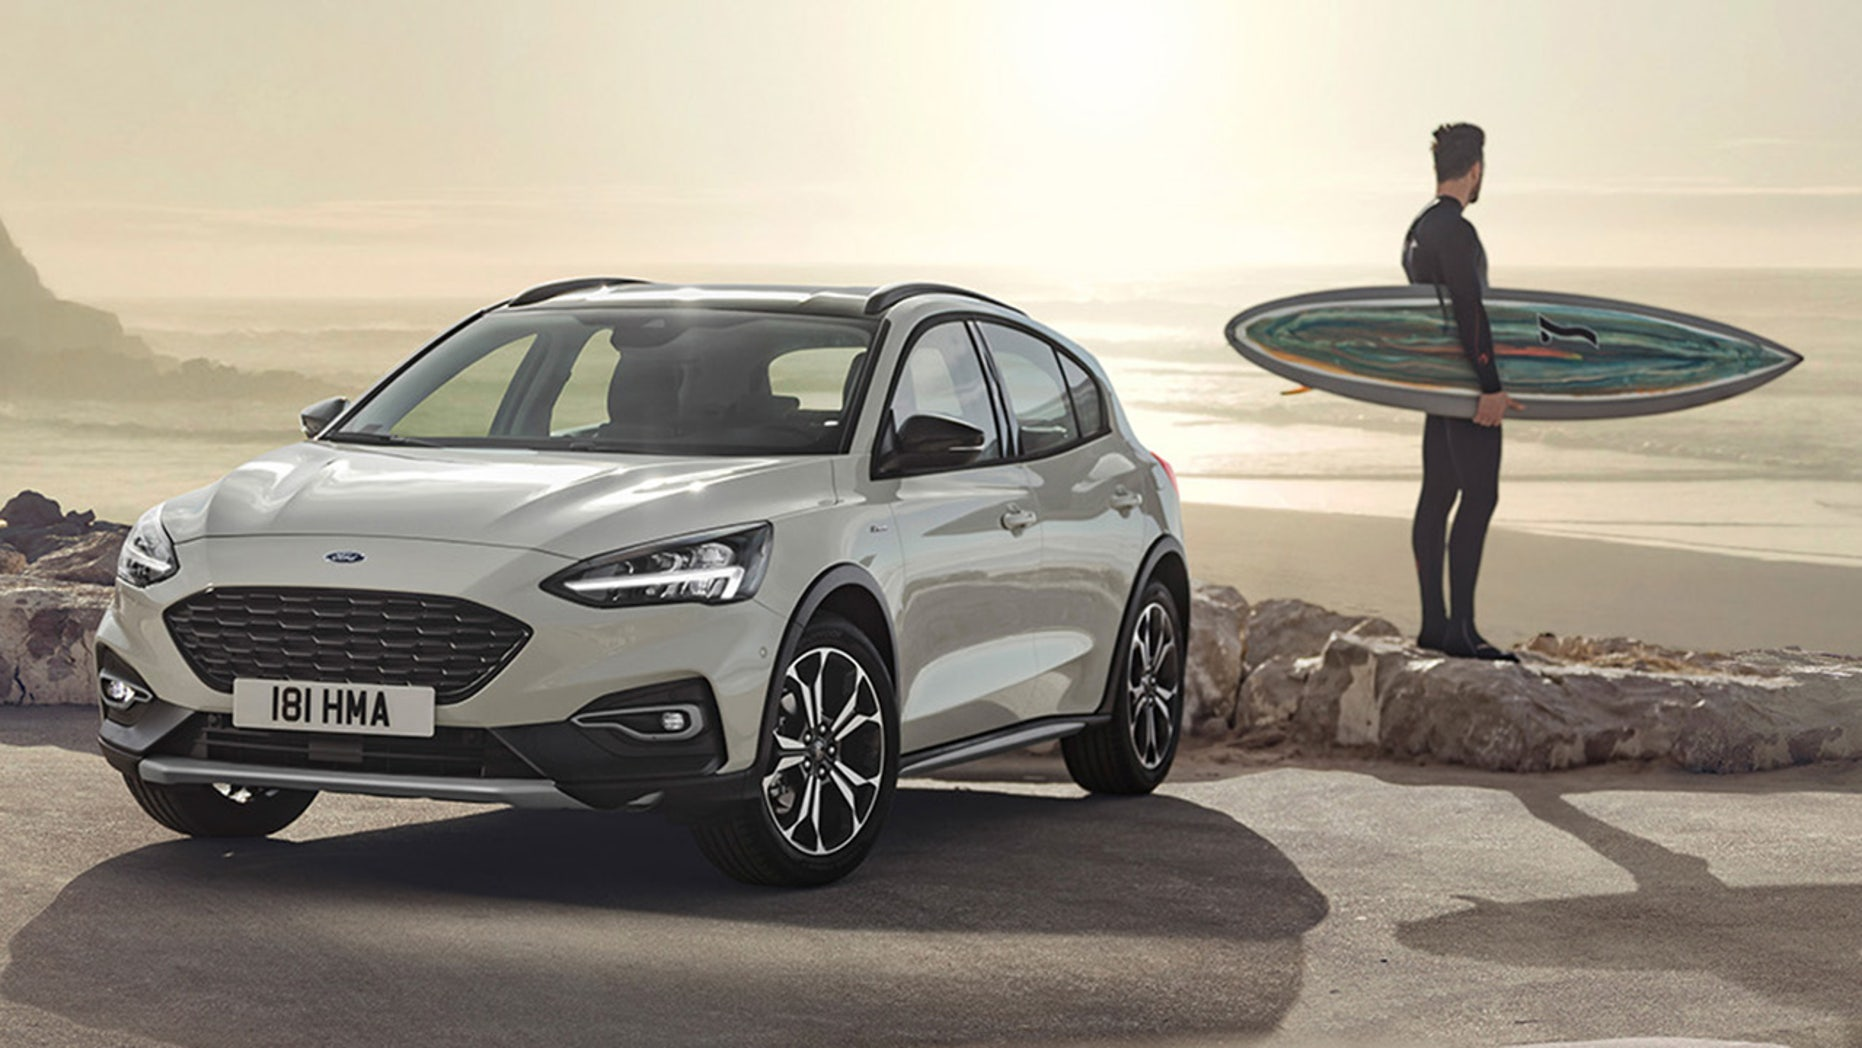 The Focus Active is a crossover-style compact.